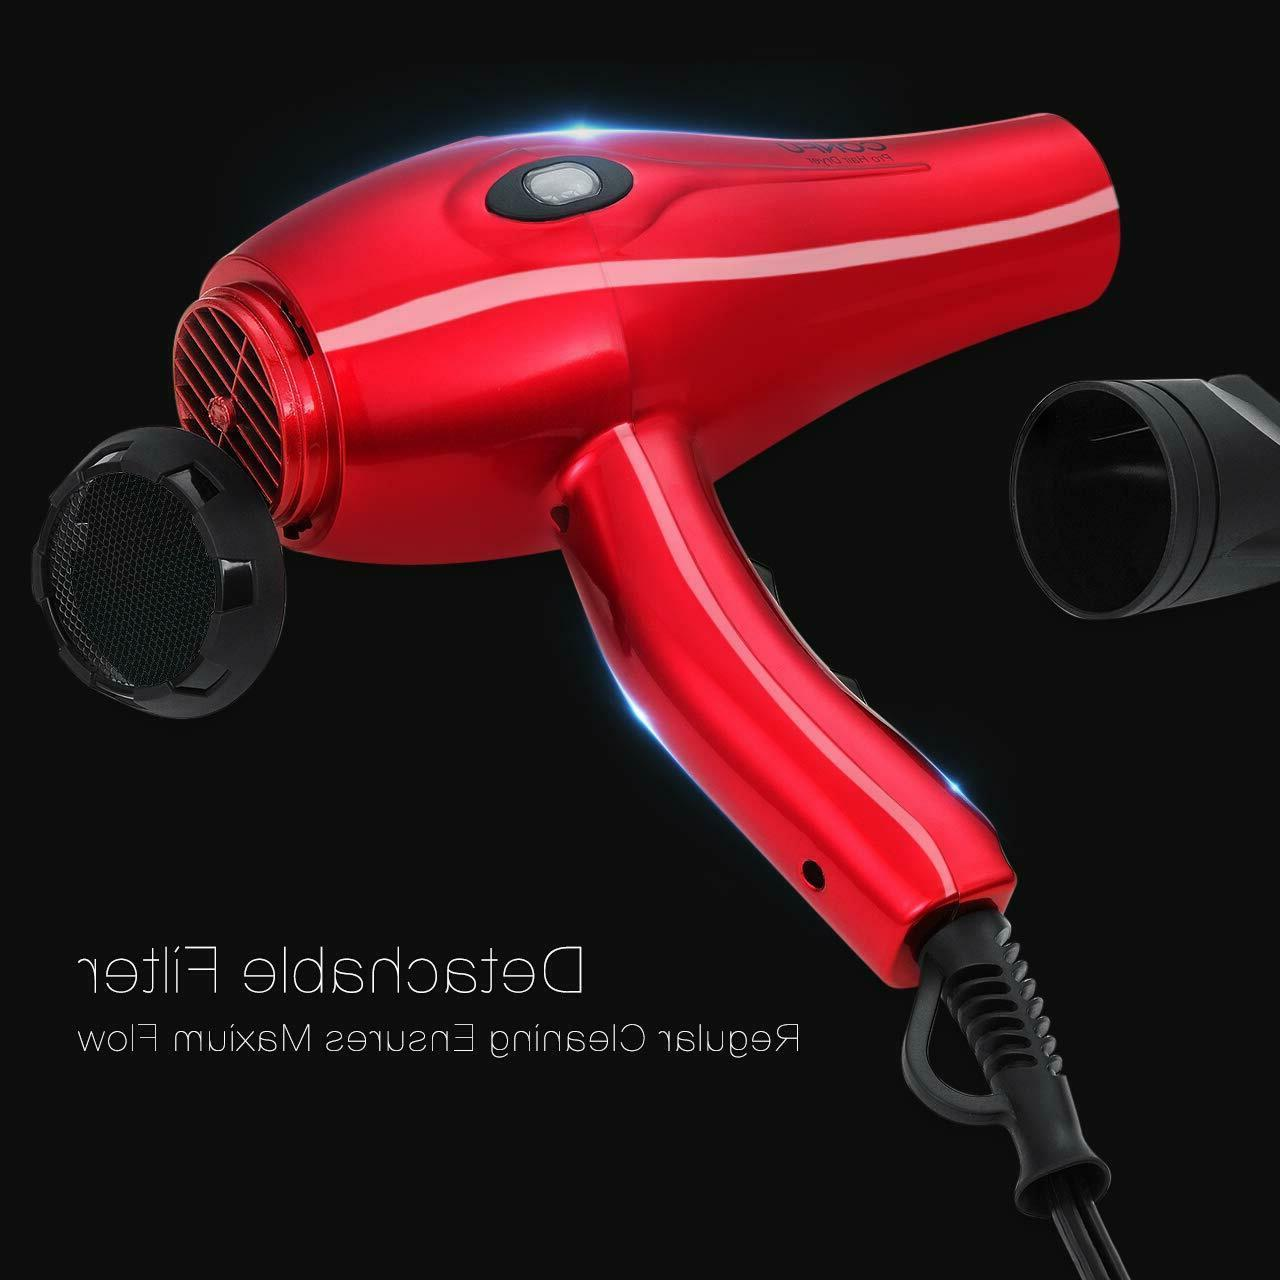 Professional Salon Infrared Ionic Fast Drying Dryer